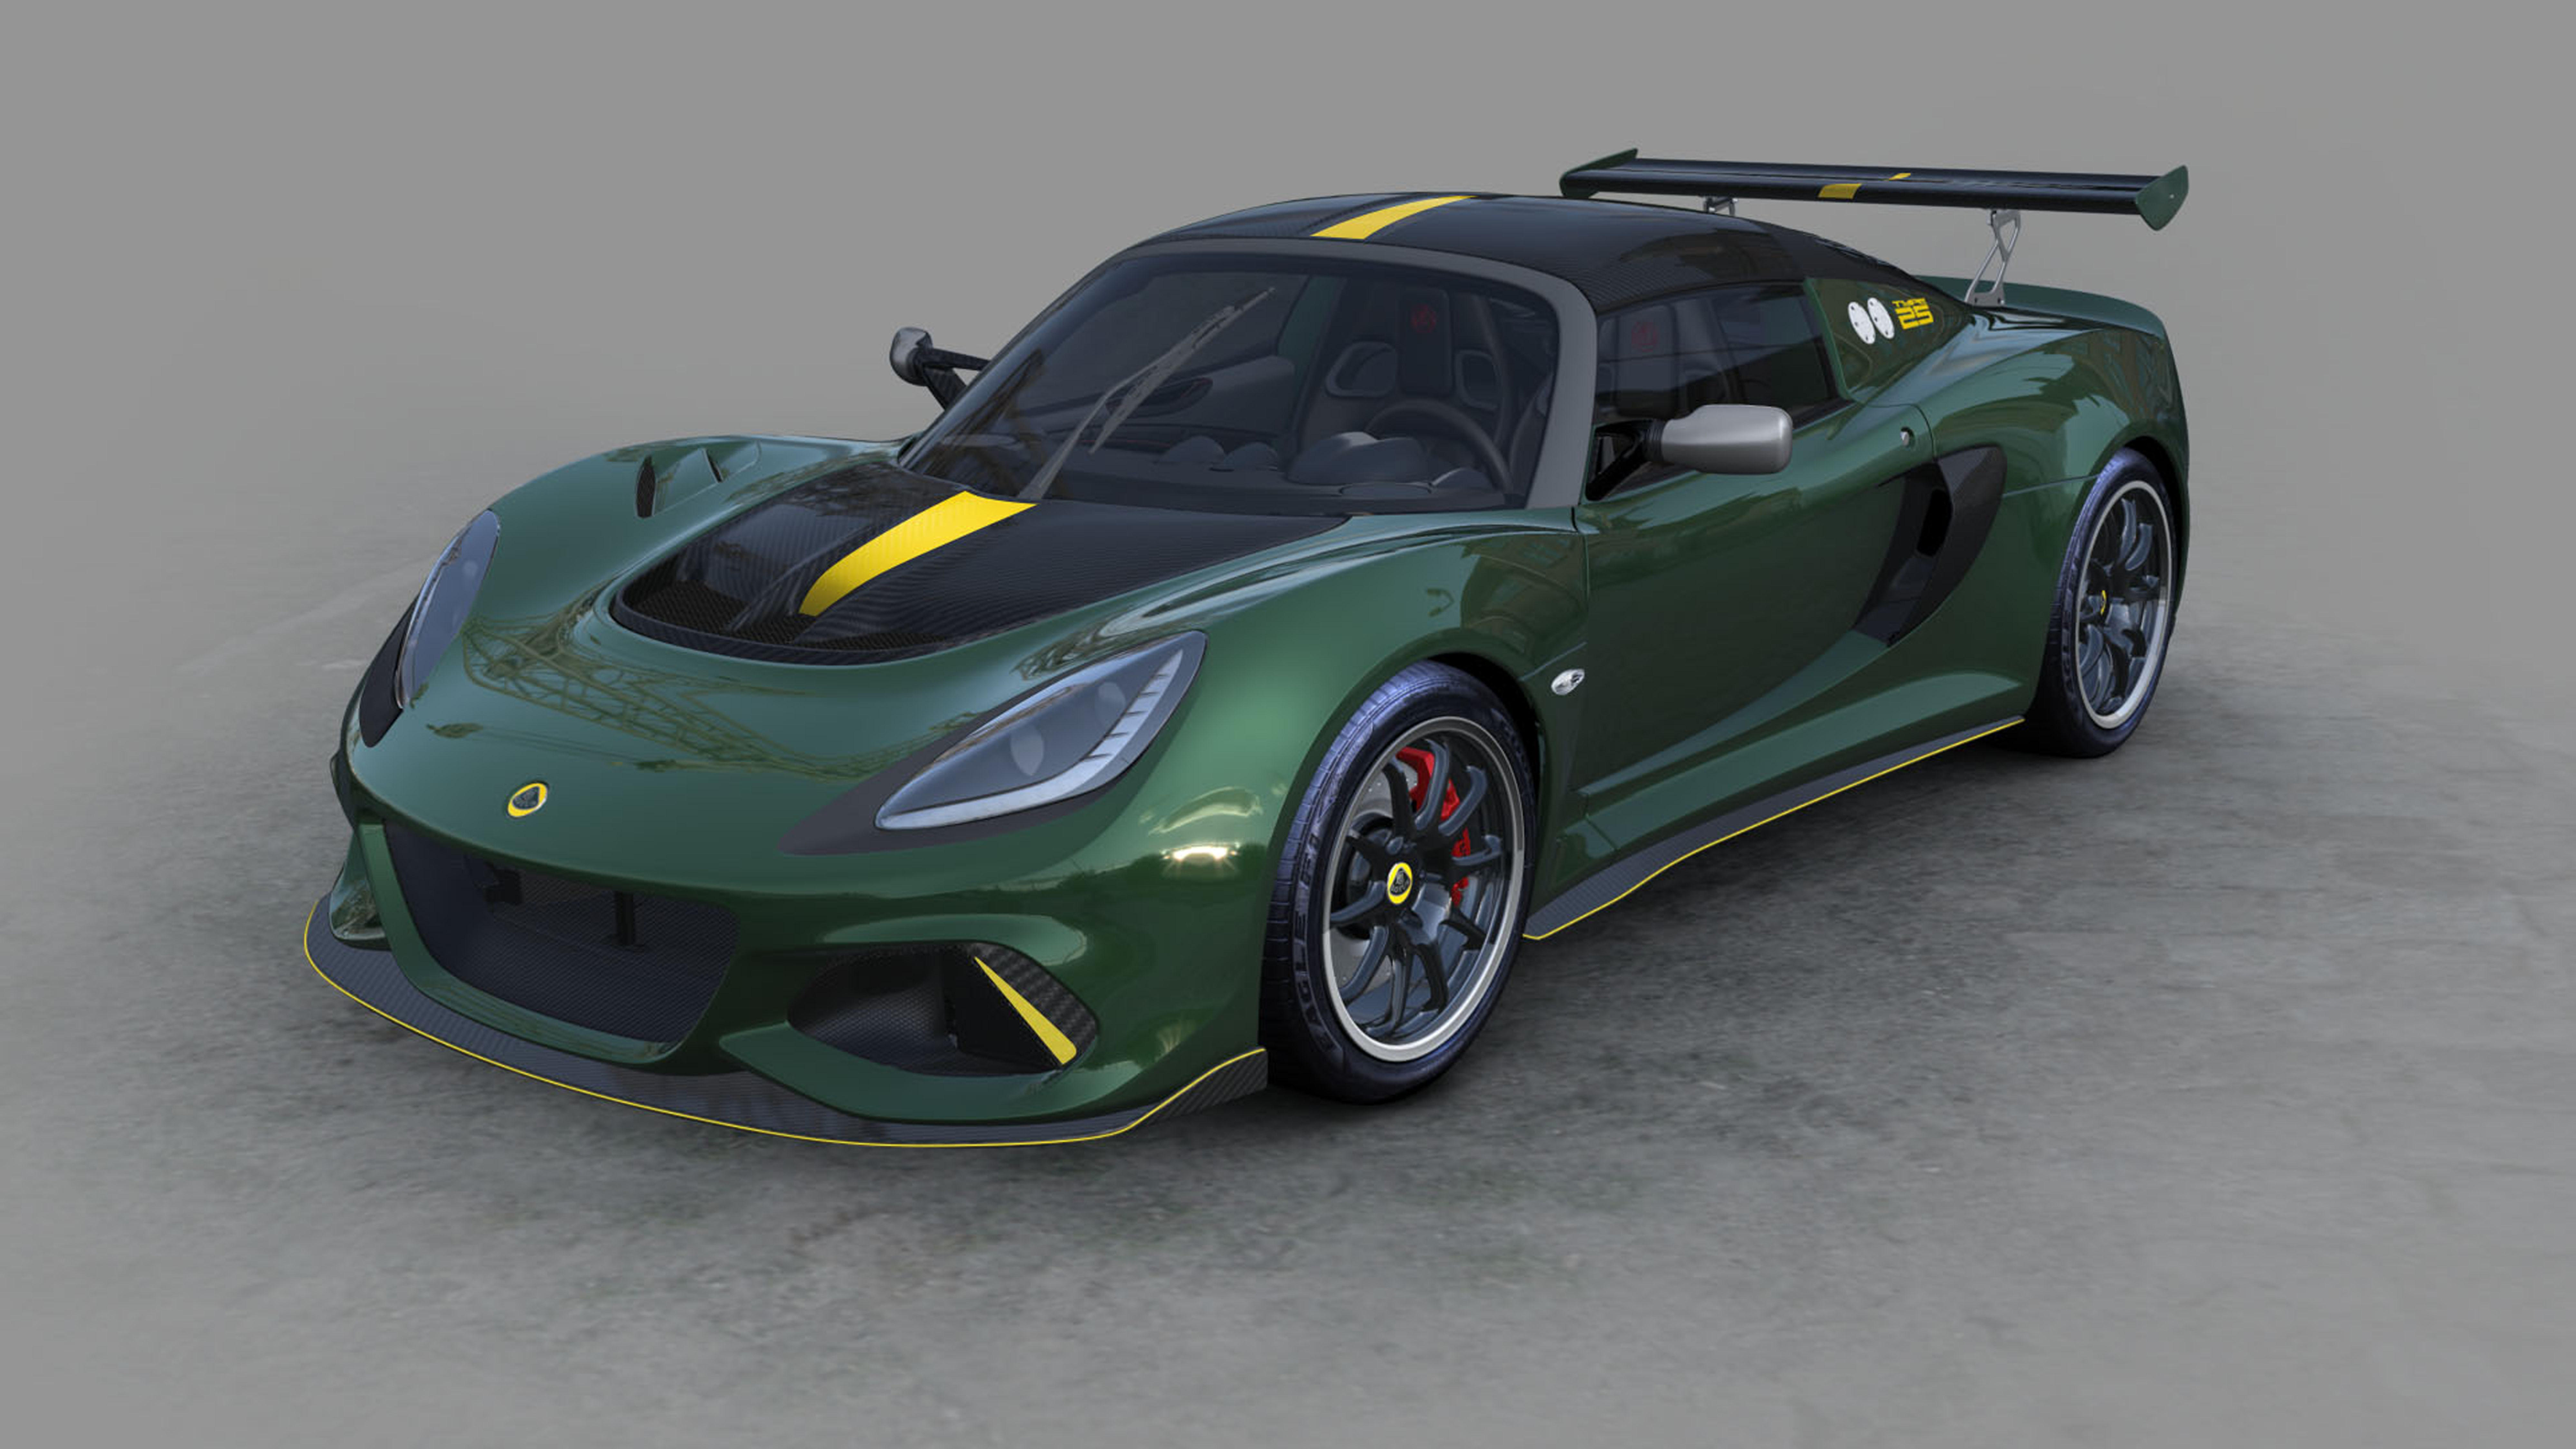 2018-lotus-exige-cup-430-type-25-3